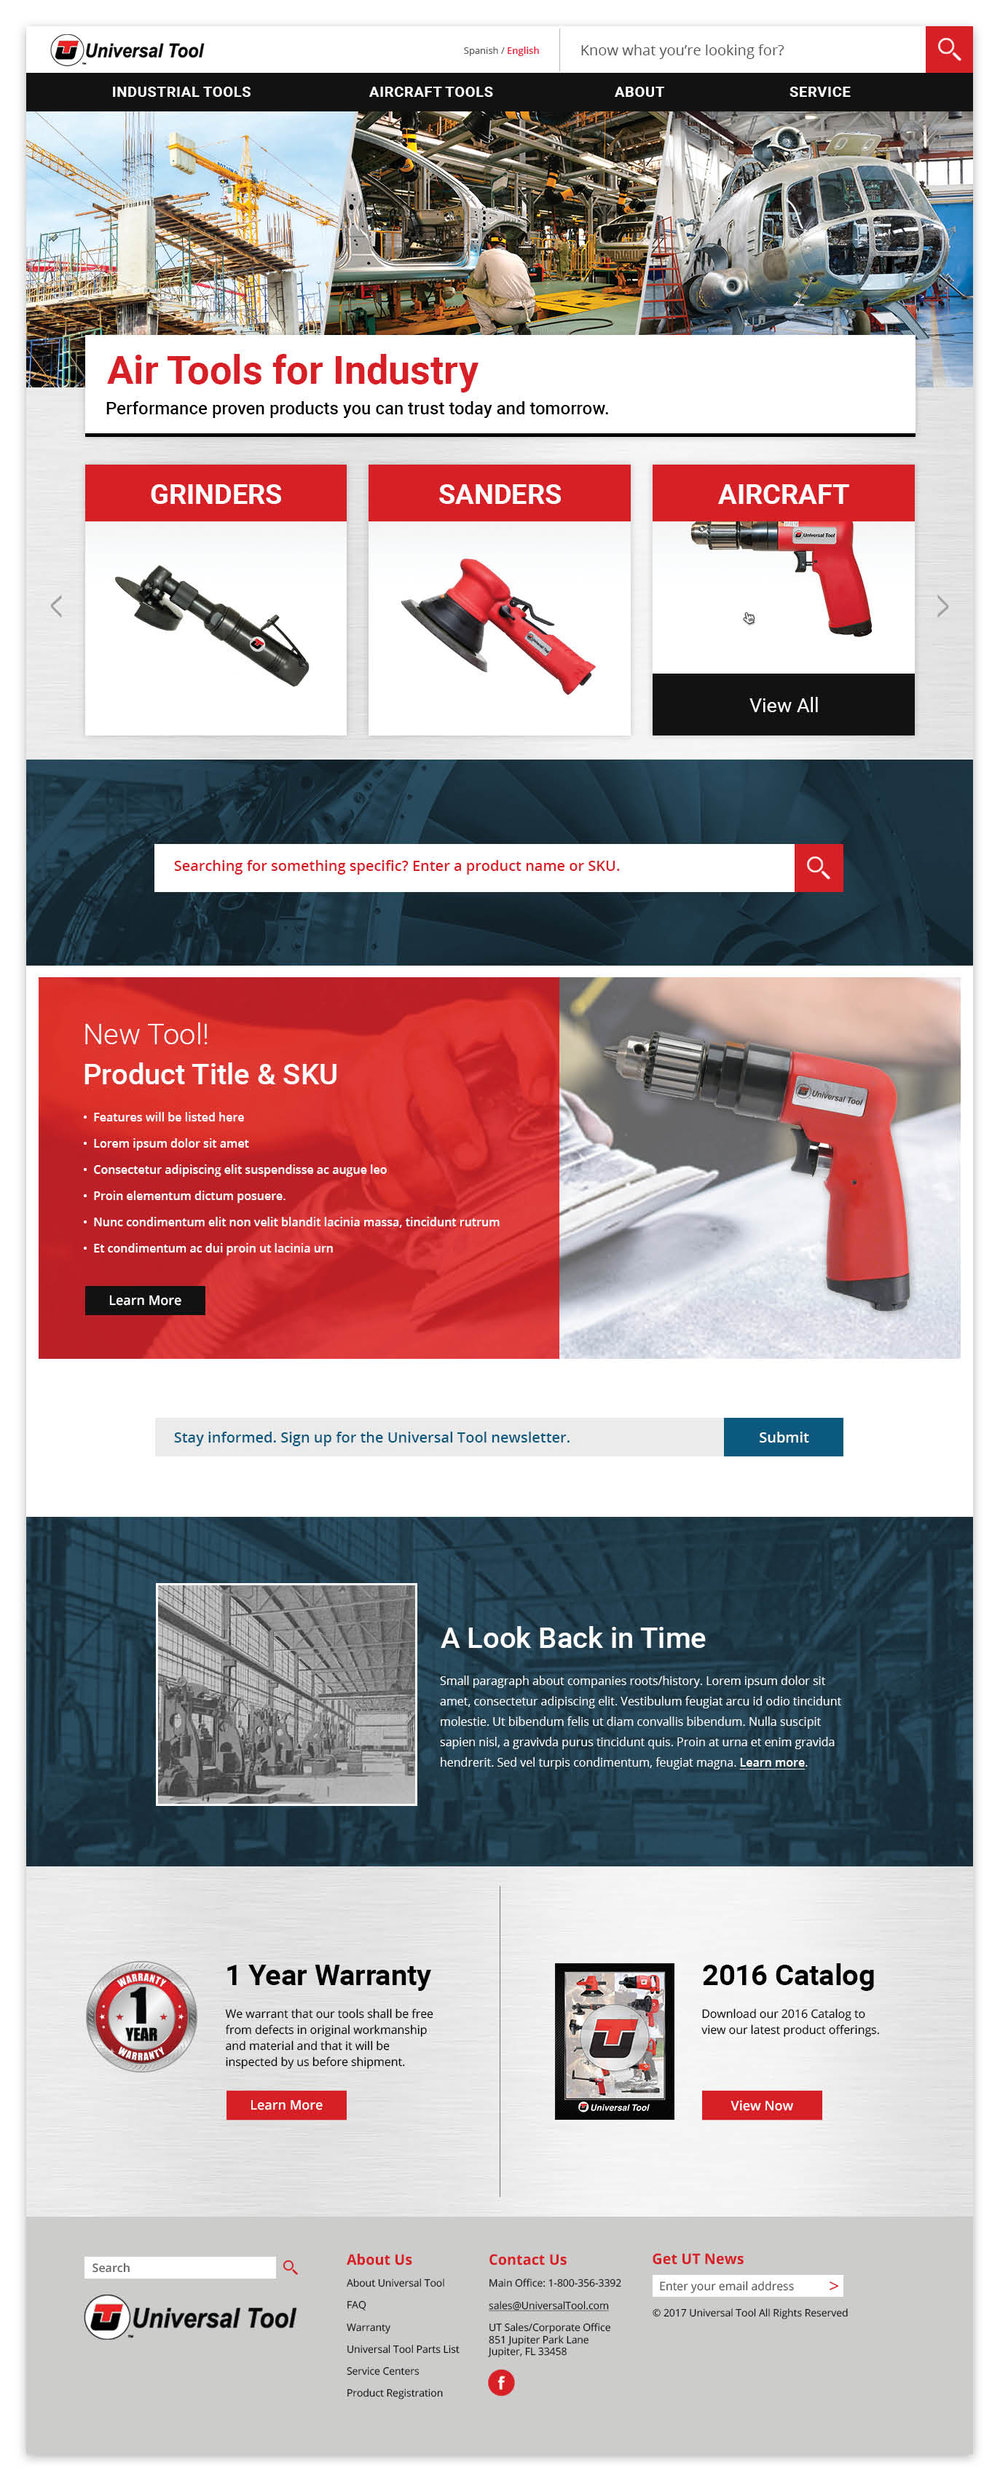 Universal Tool Homepage (some text/images still FPO as site is not yet complete)